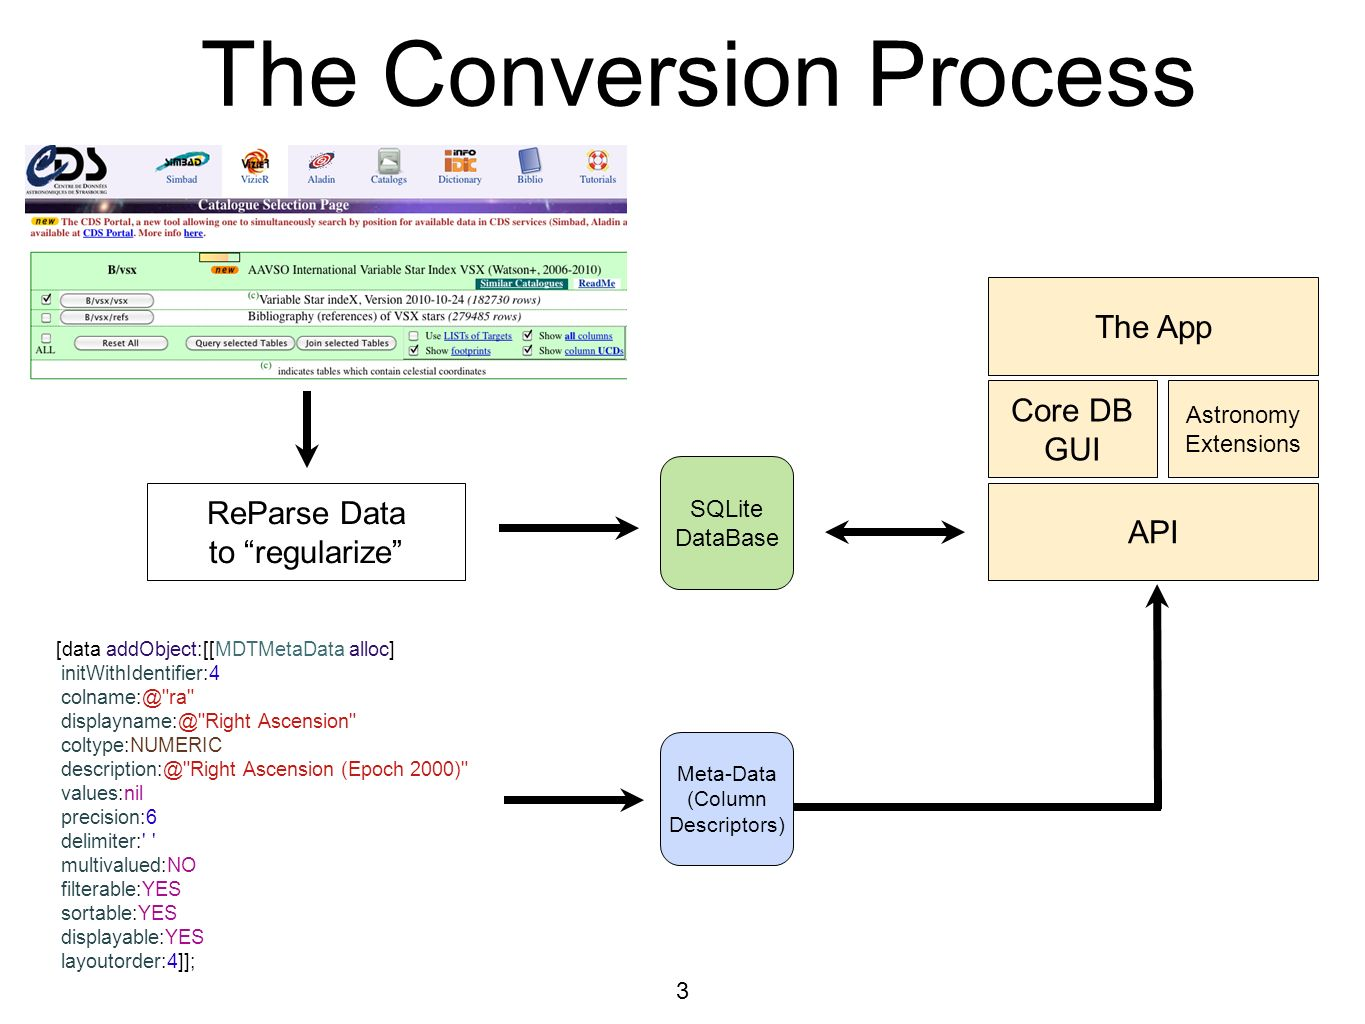 The Conversion Process 3 ReParse Data to regularize SQLite DataBase Meta-Data (Column Descriptors) [data addObject:[[MDTMetaData alloc] initWithIdentifier:4 colname:@ ra displayname:@ Right Ascension coltype:NUMERIC description:@ Right Ascension (Epoch 2000) values:nil precision:6 delimiter: multivalued:NO filterable:YES sortable:YES displayable:YES layoutorder:4]]; API Core DB GUI Astronomy Extensions The App